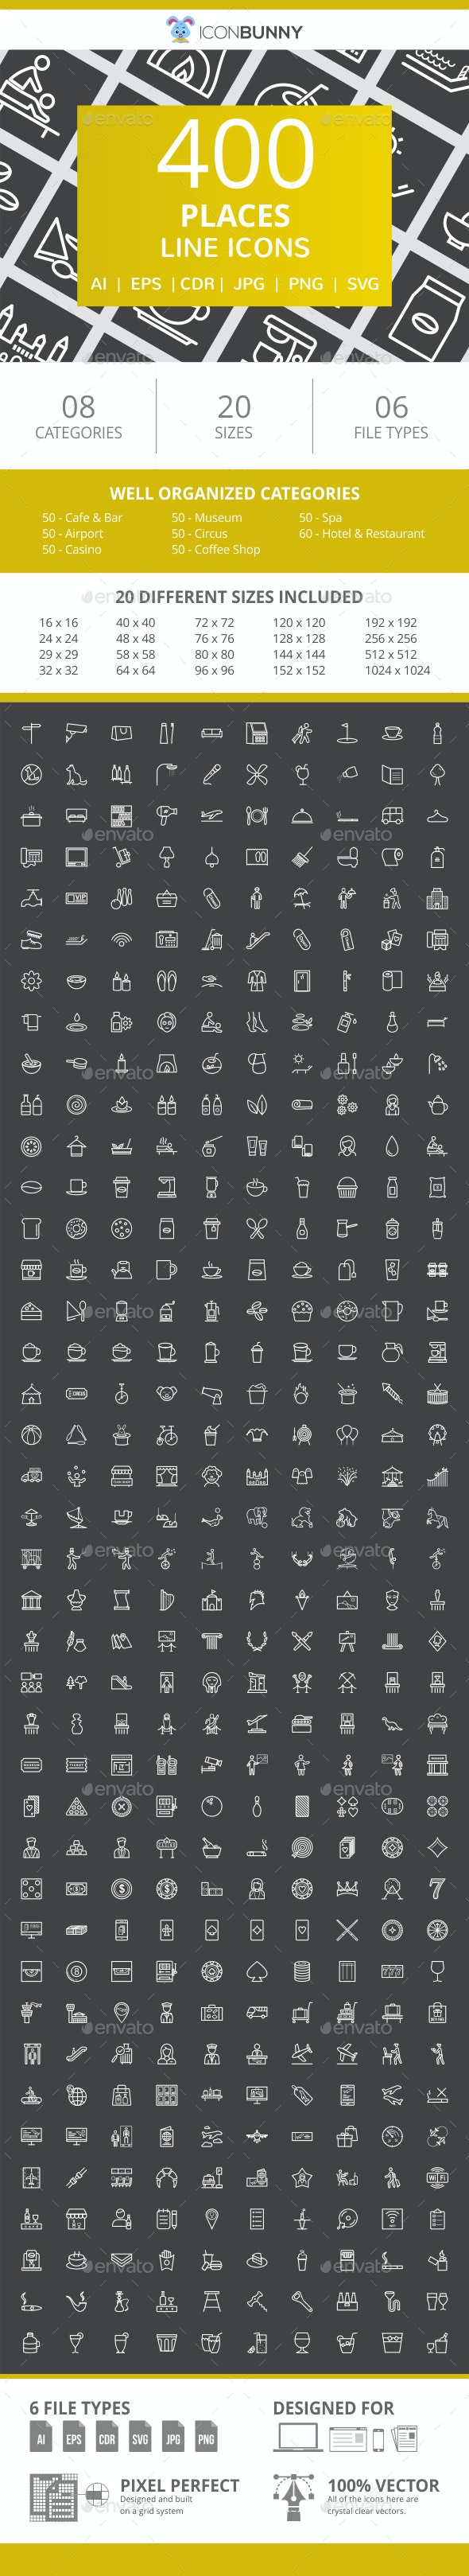 410 Places Line Inverted Icons - Icons